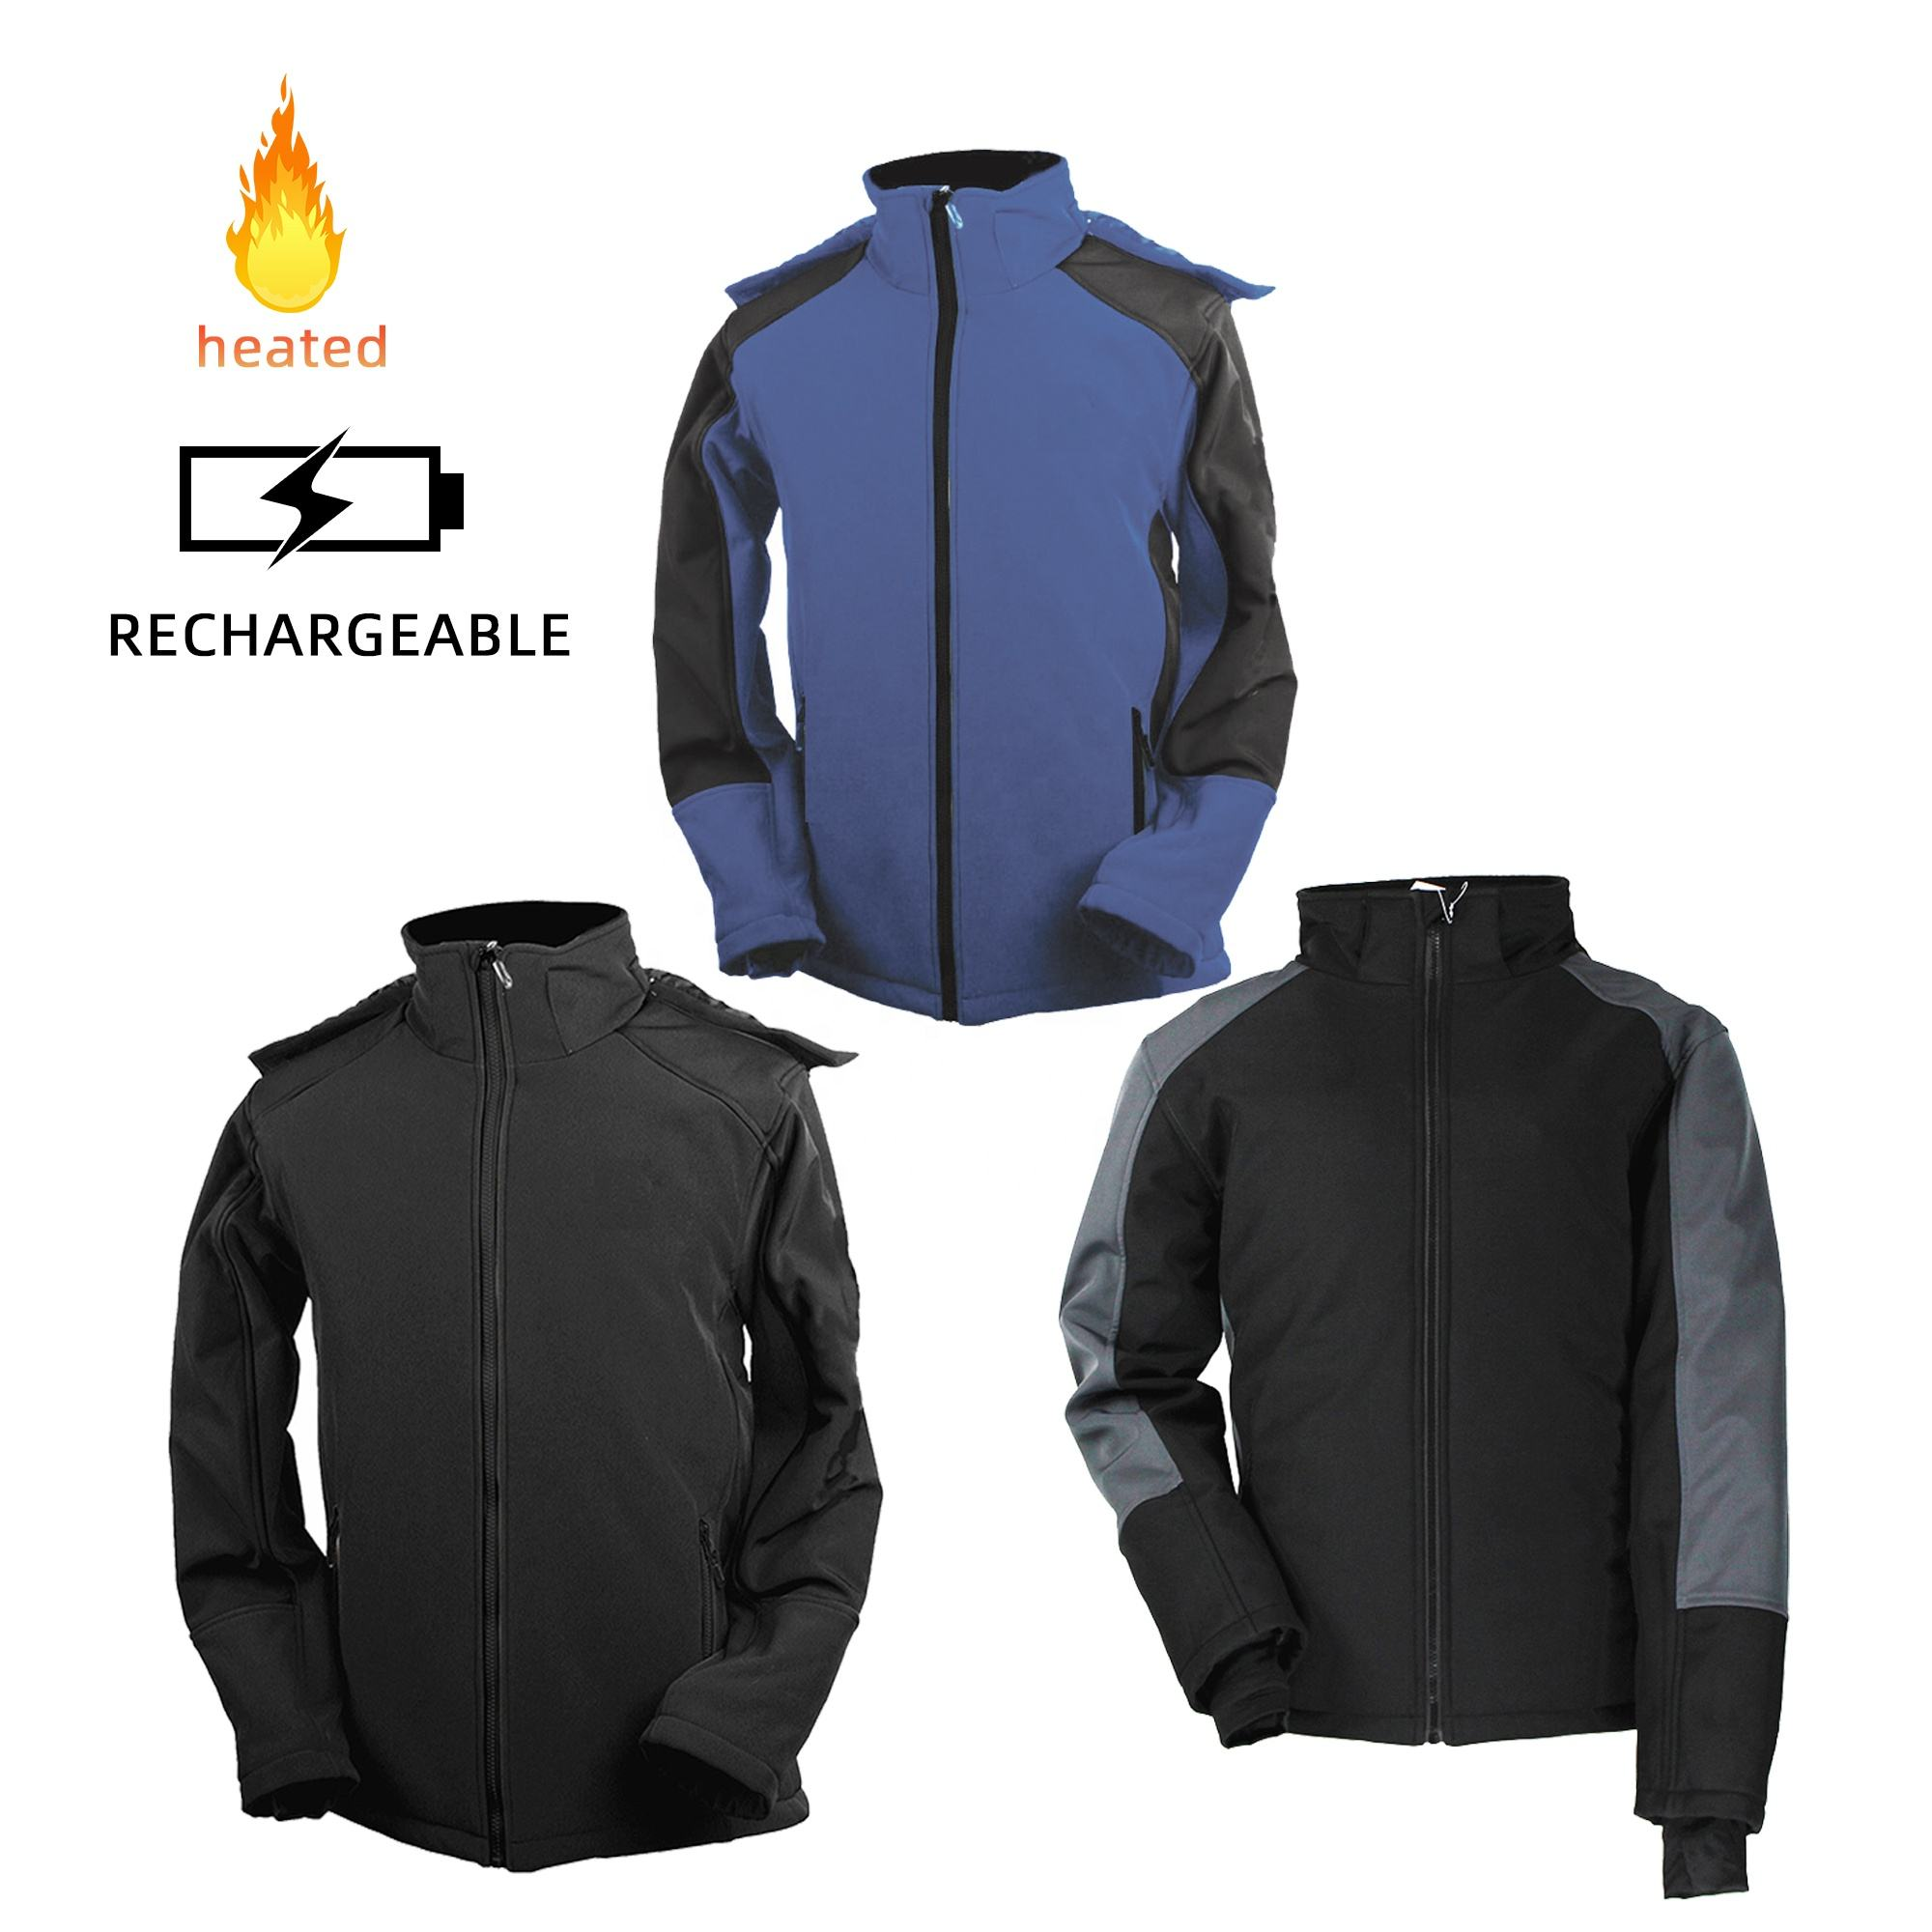 USB 5V10000mAh Unisex Far-infrared Heated Jacket Outdoor electric heated clothing